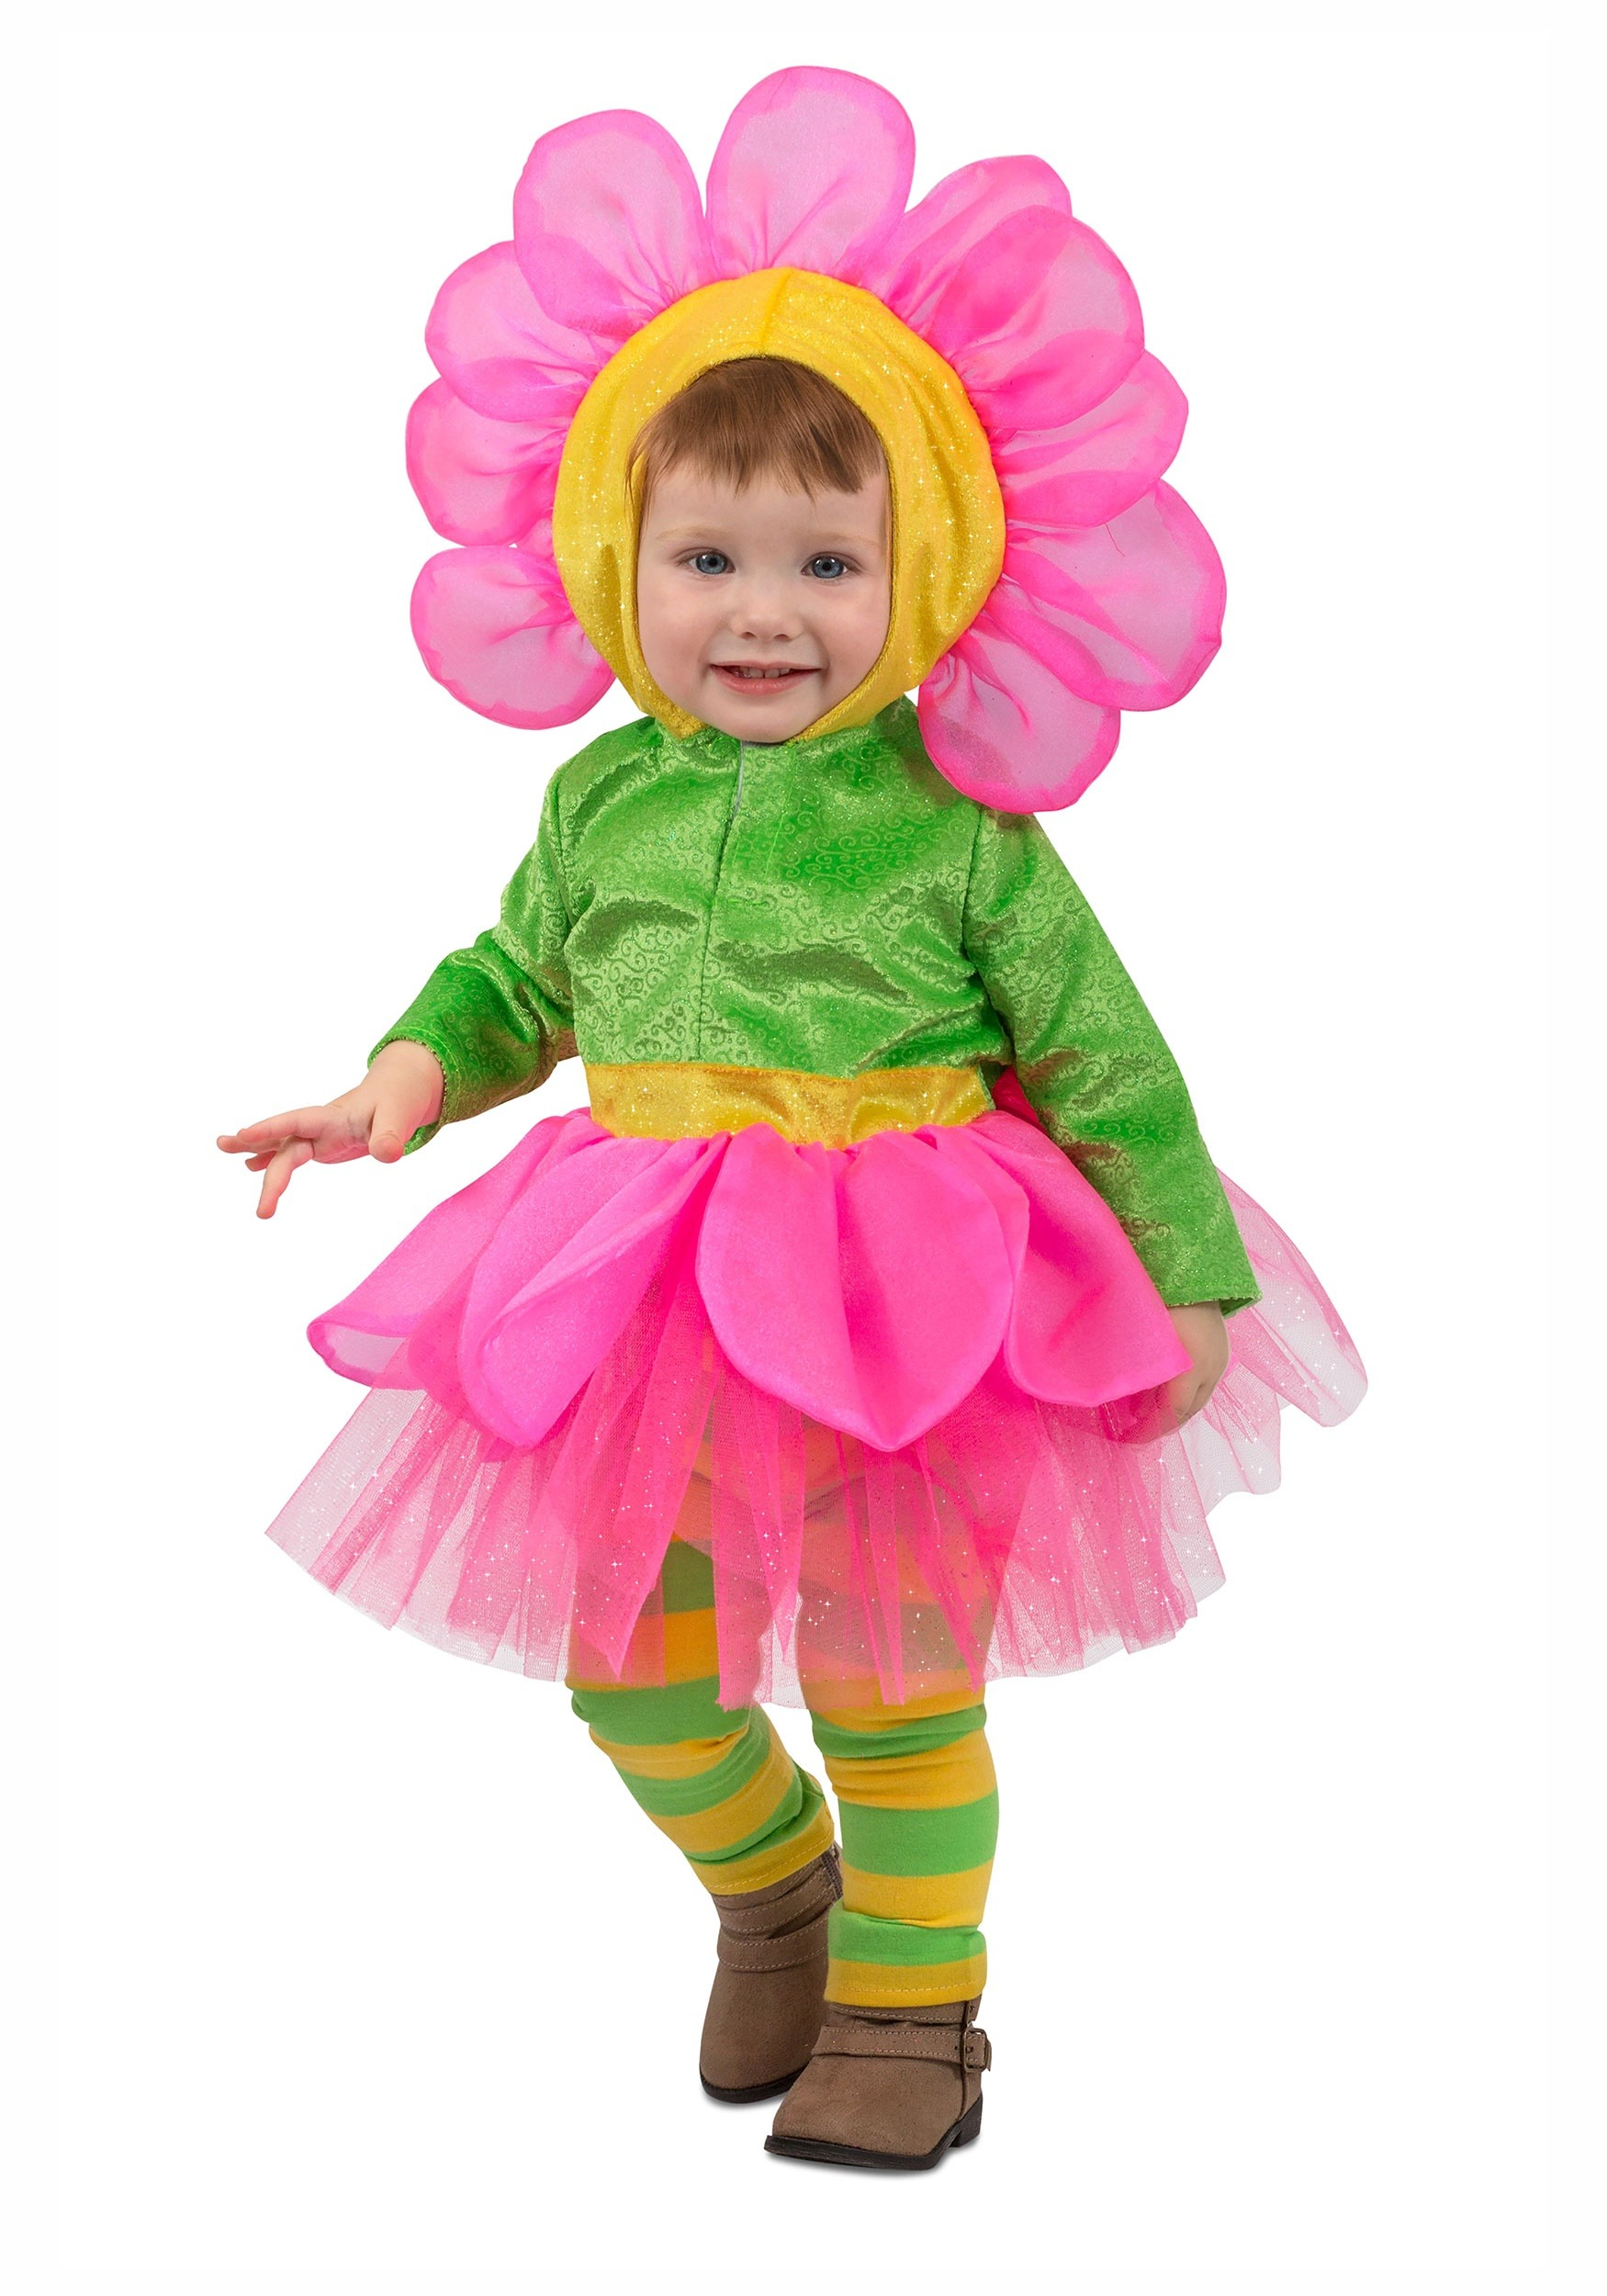 Girls Flower Costume For A Toddler